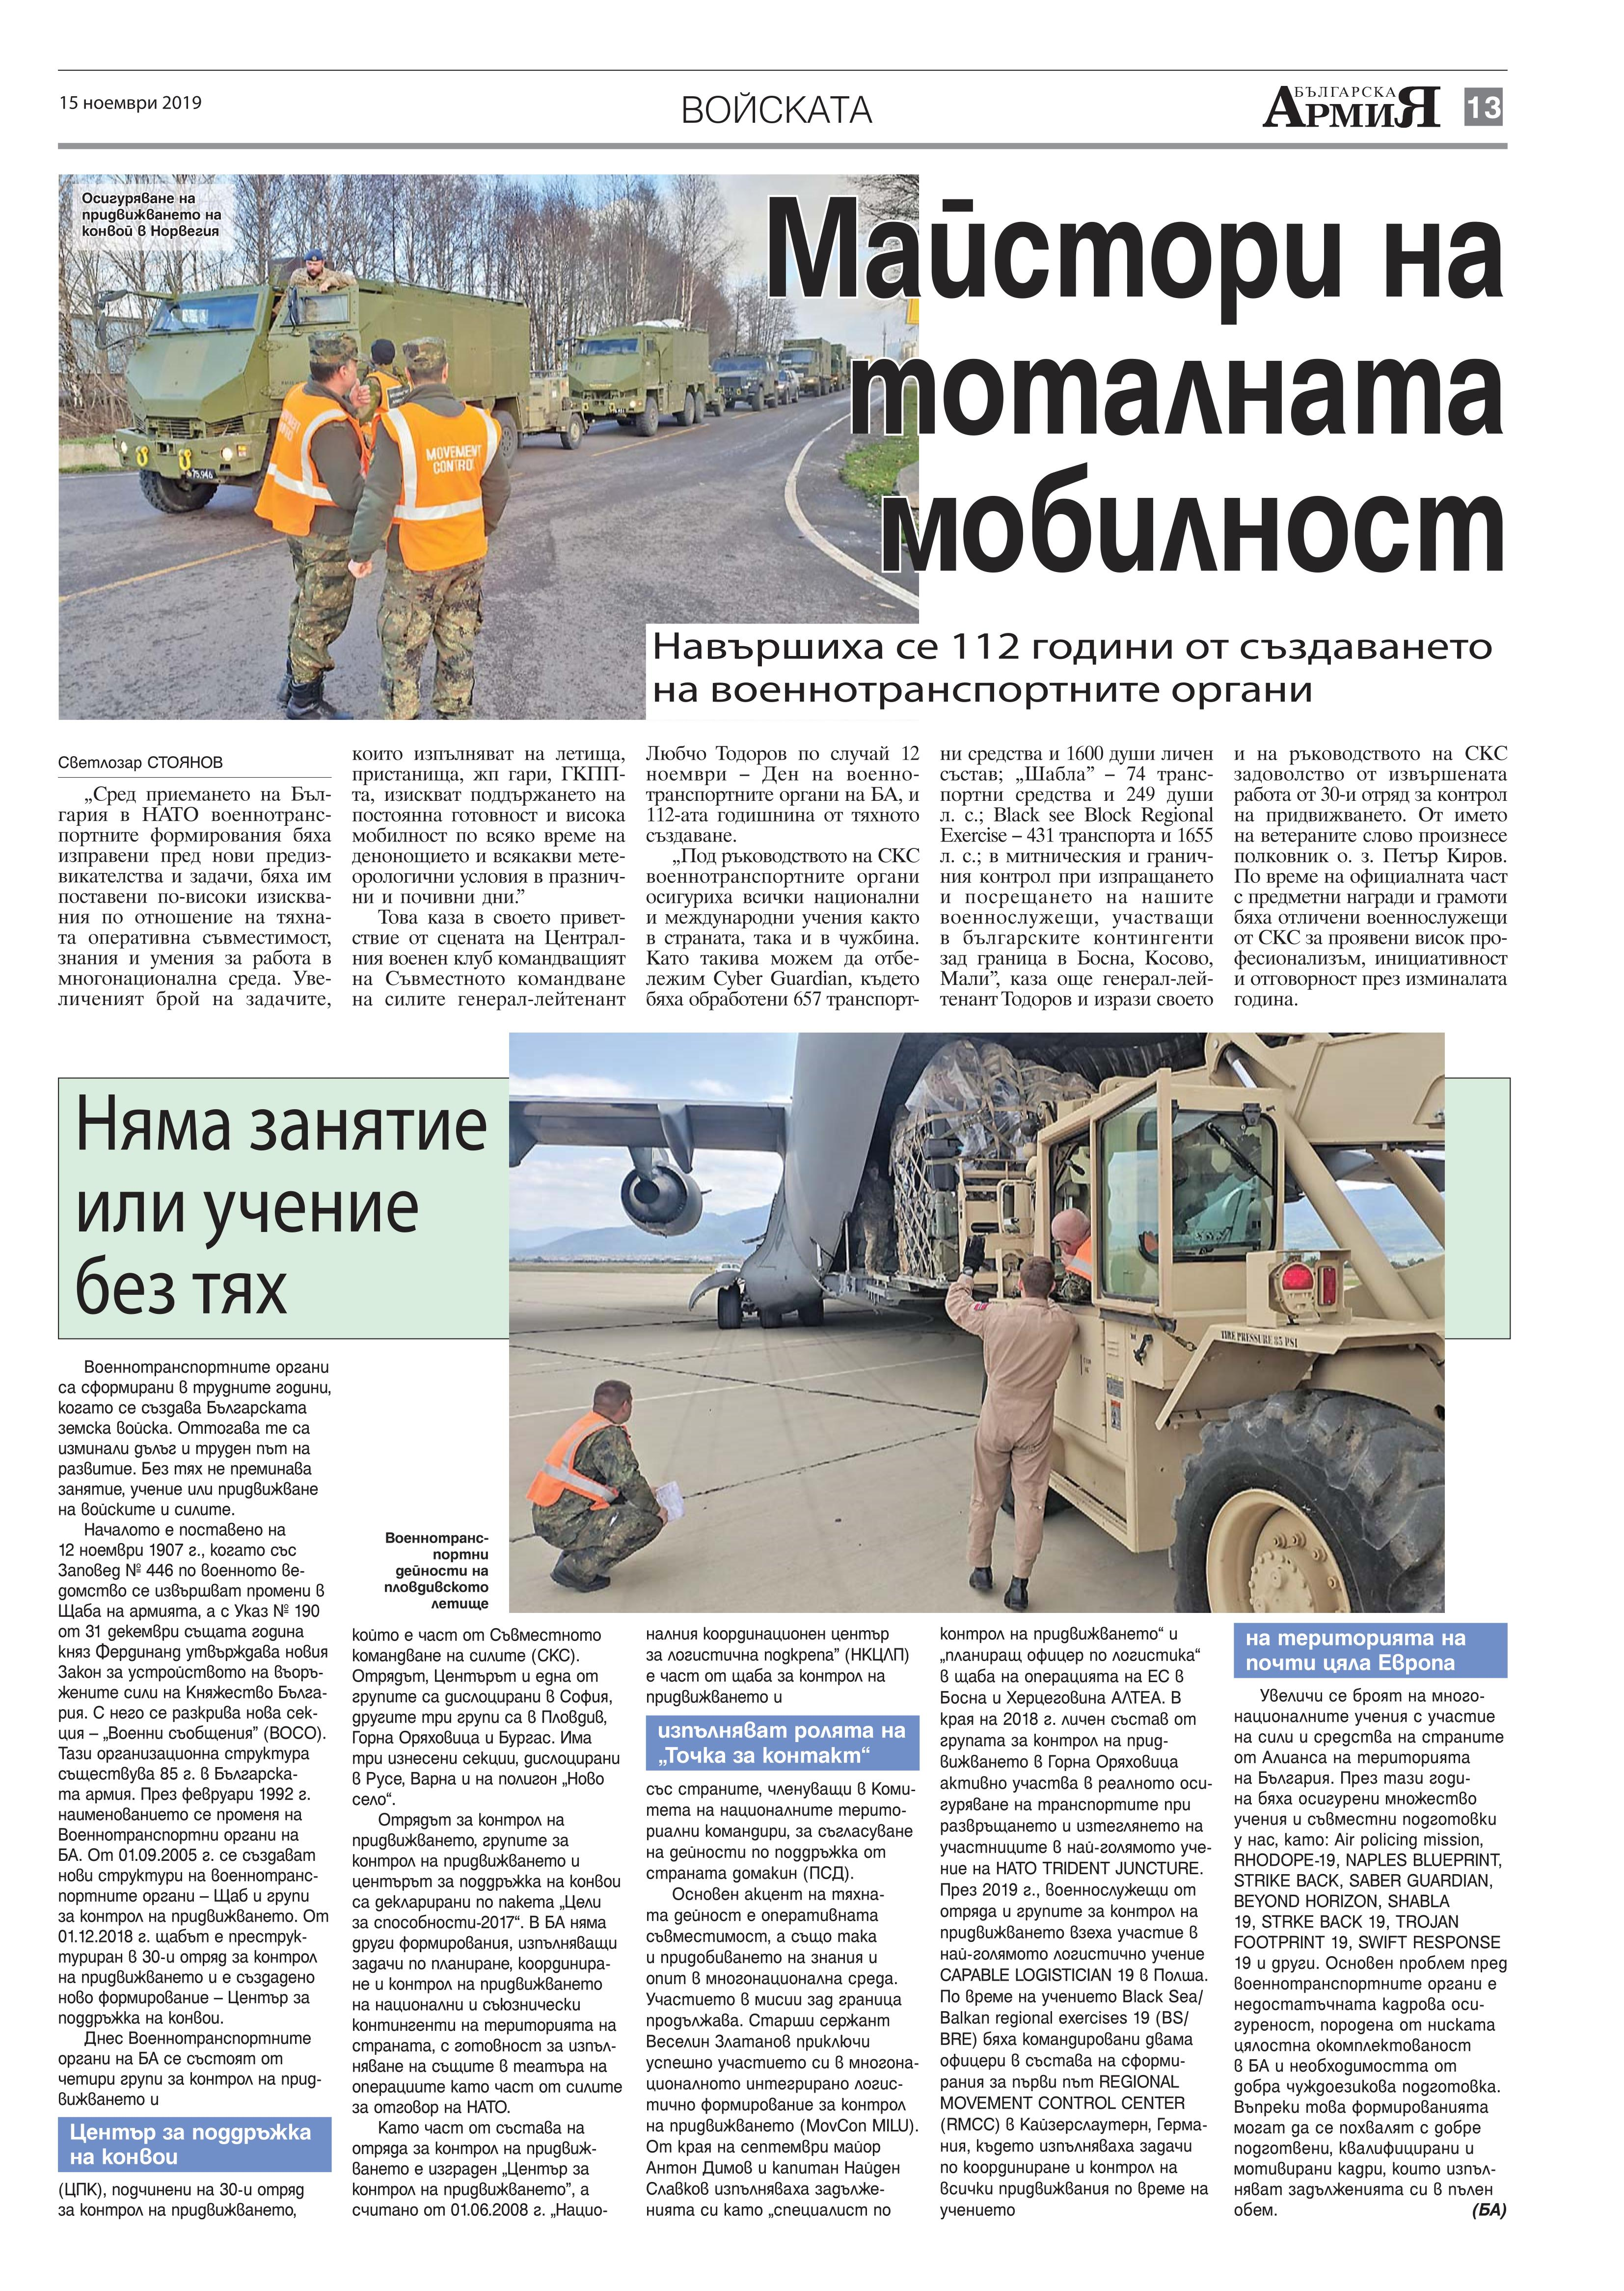 https://www.armymedia.bg/wp-content/uploads/2015/06/13.page1_-116.jpg